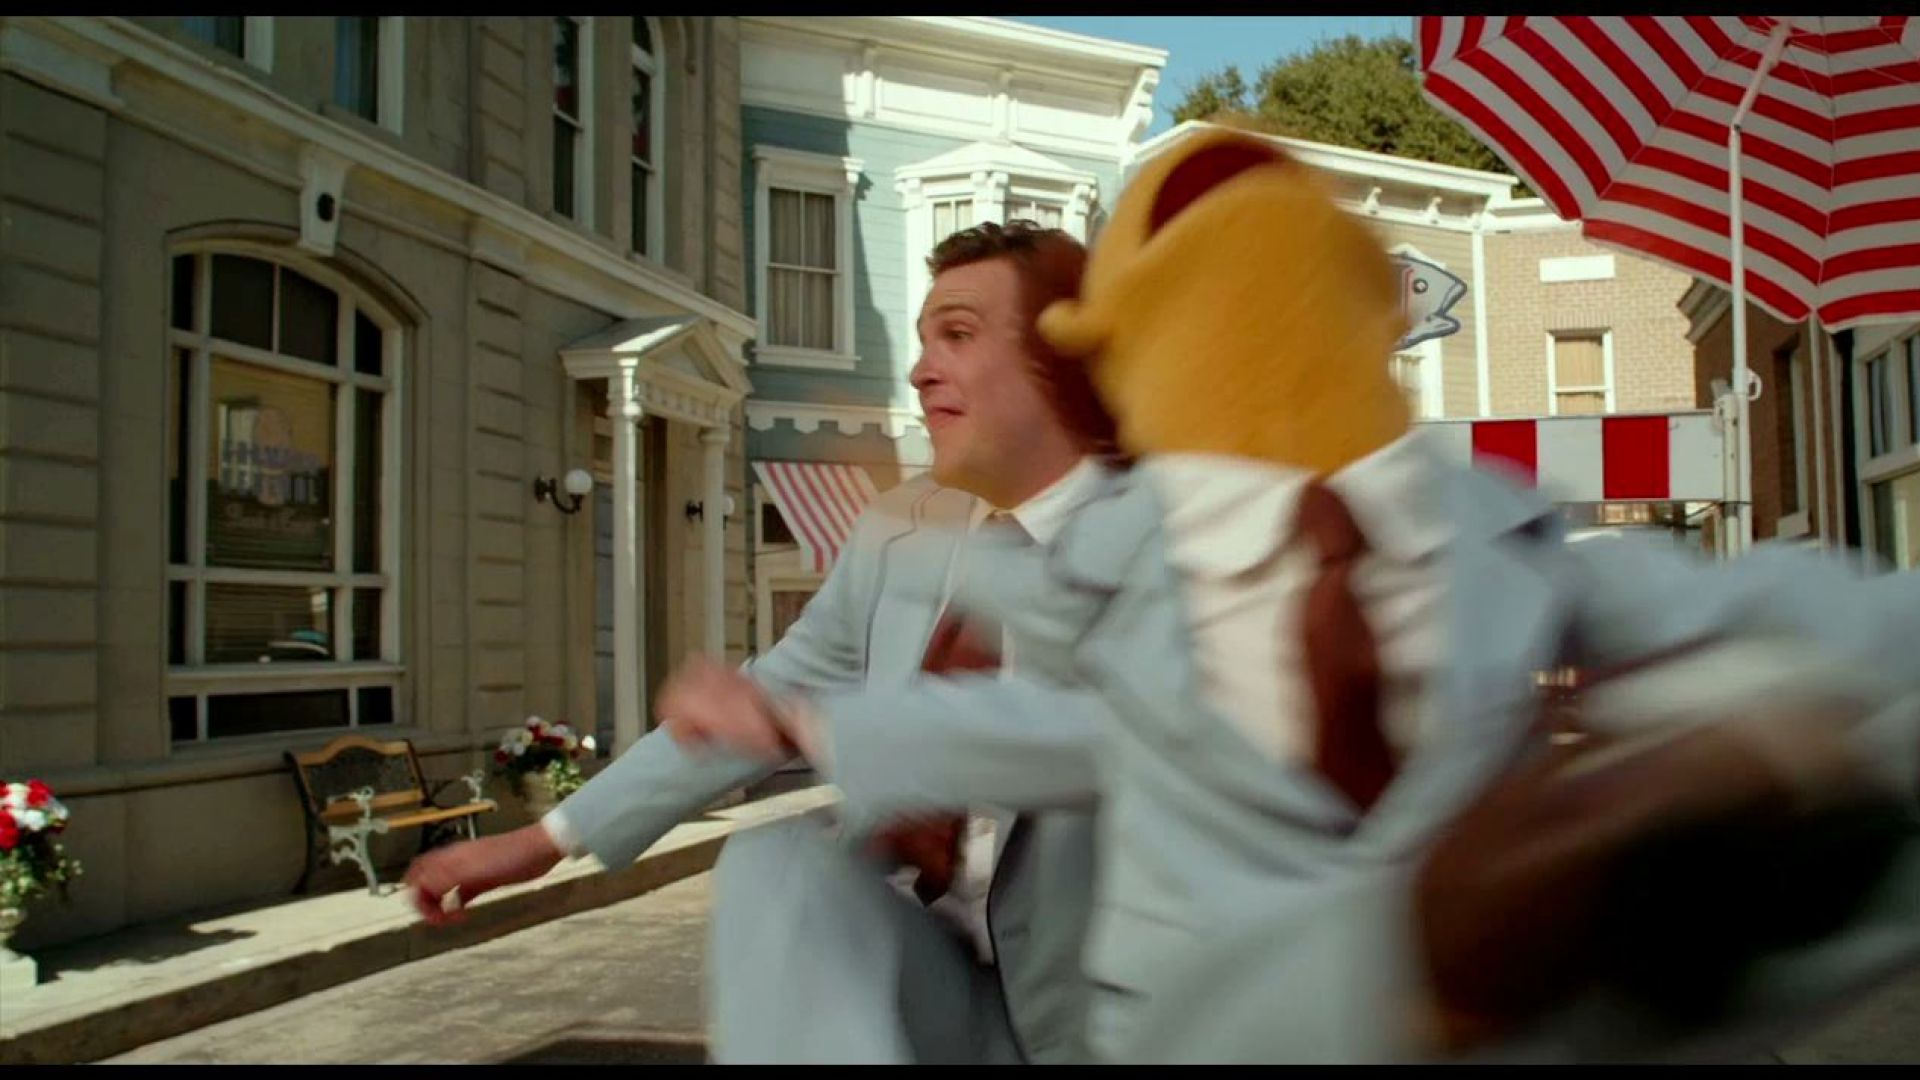 The Muppets sing Life's A Happy Song and Jason Segel kicks Walter off screen